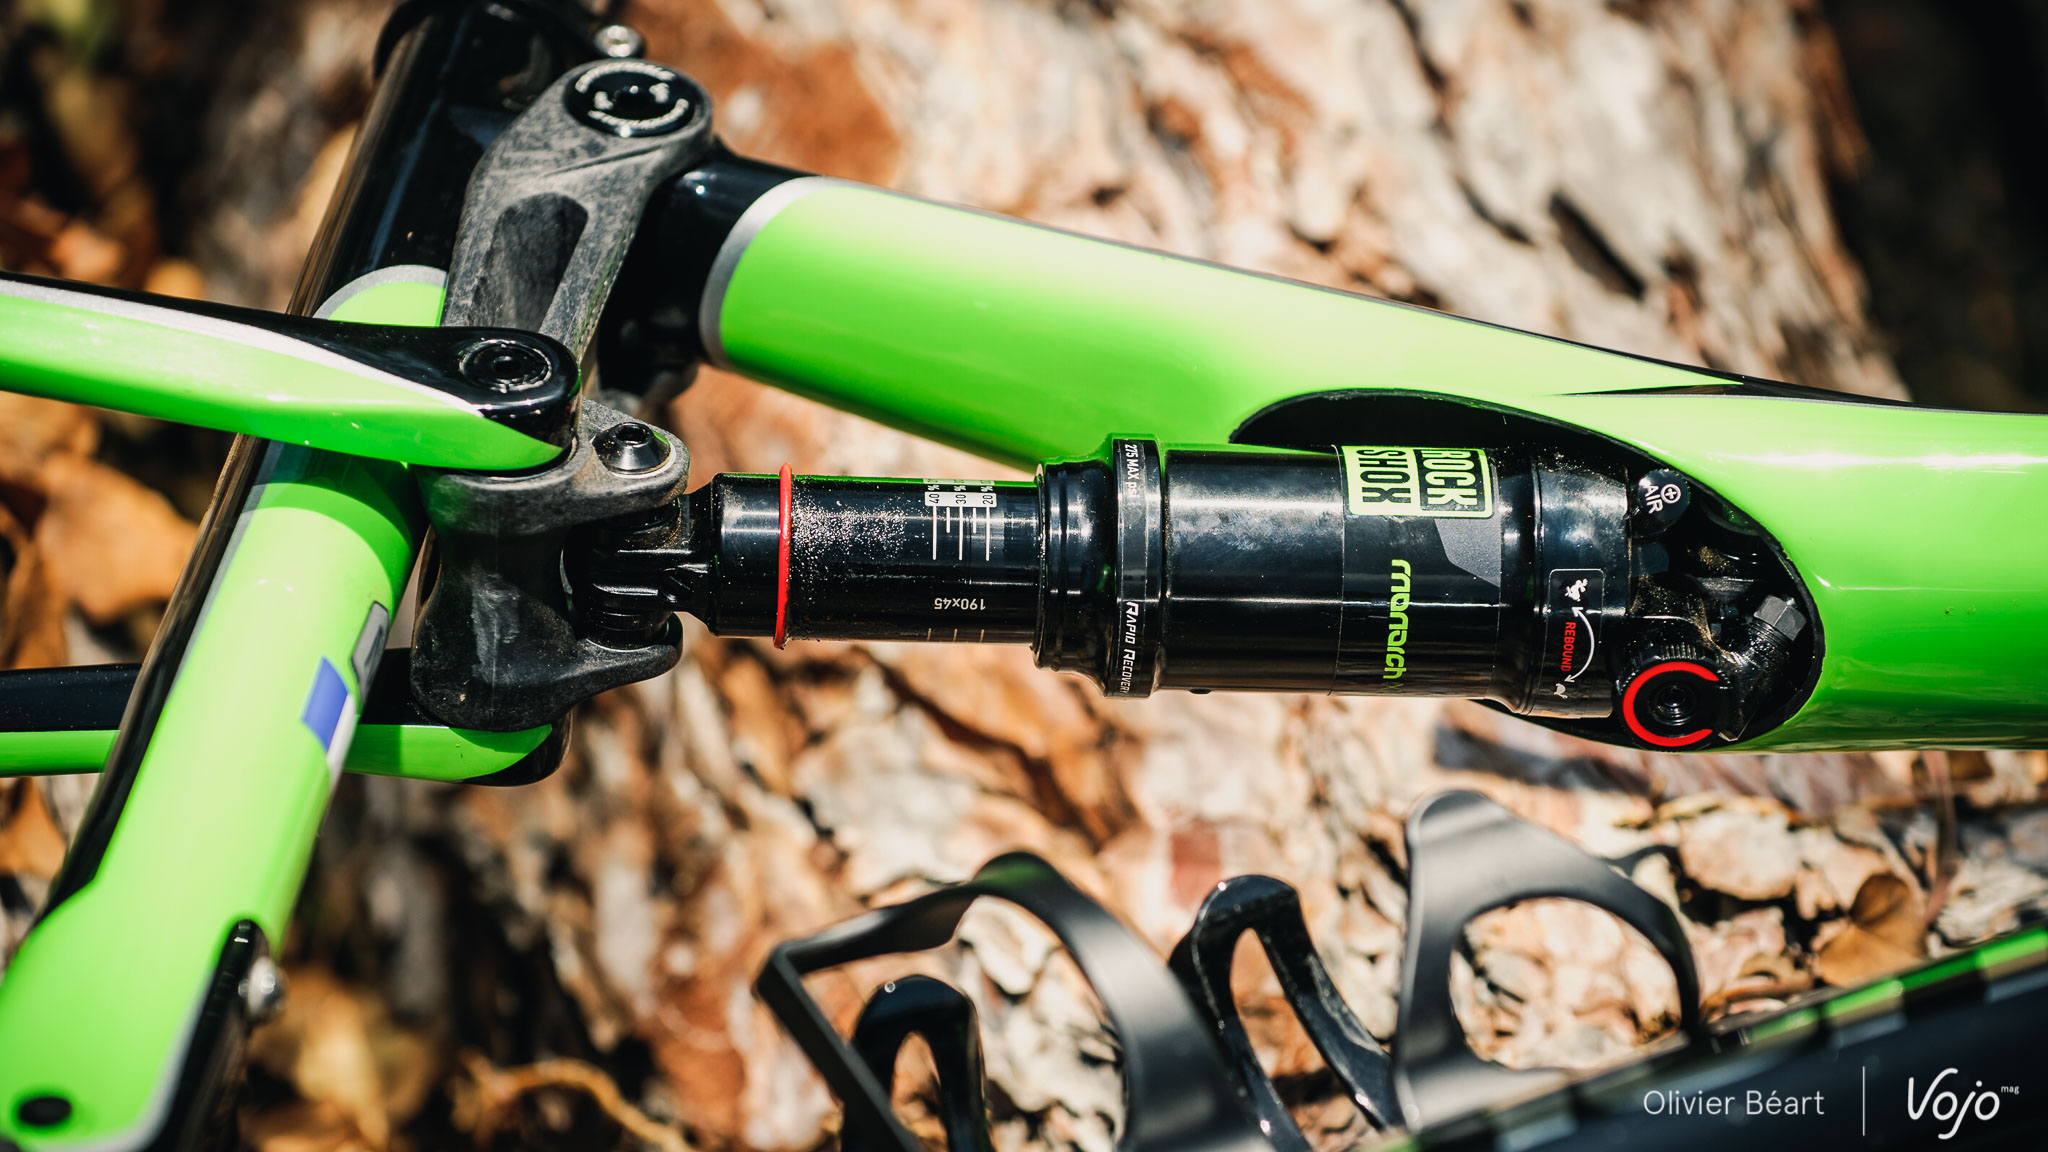 Cannondale_Scalpel_2017_Copyright_OBeart_VojoMag-1-15